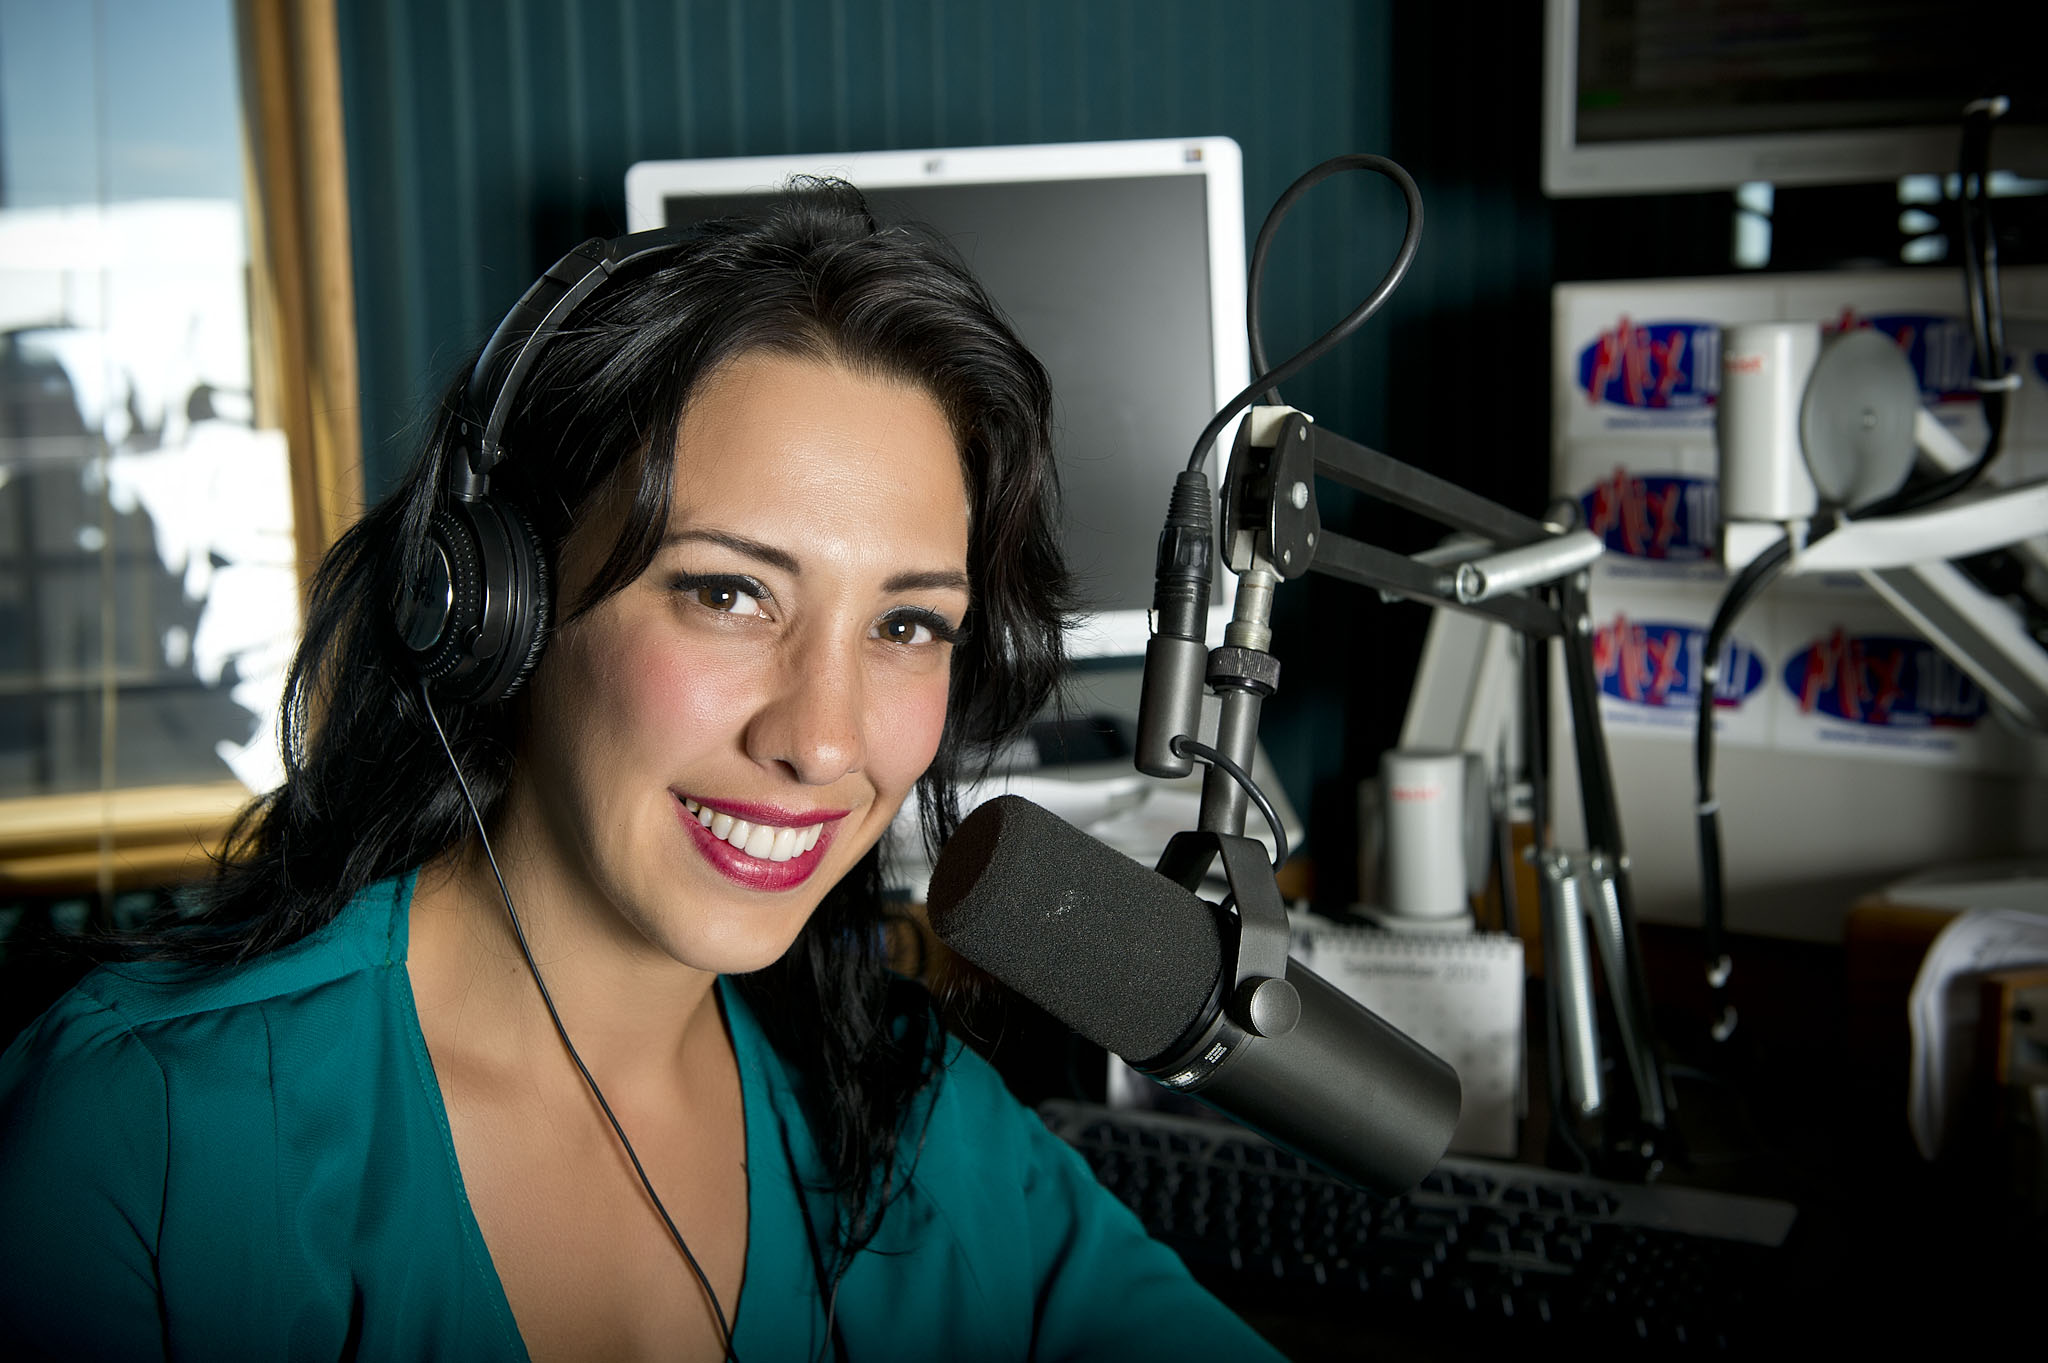 """an analysis of ryan seacrests career as a tv and radio personality Iheartmedia has named sisanie villaclara the new co-host of """"on air with ryan seacrest"""" the los angeles radio radio personality media moves, which i."""